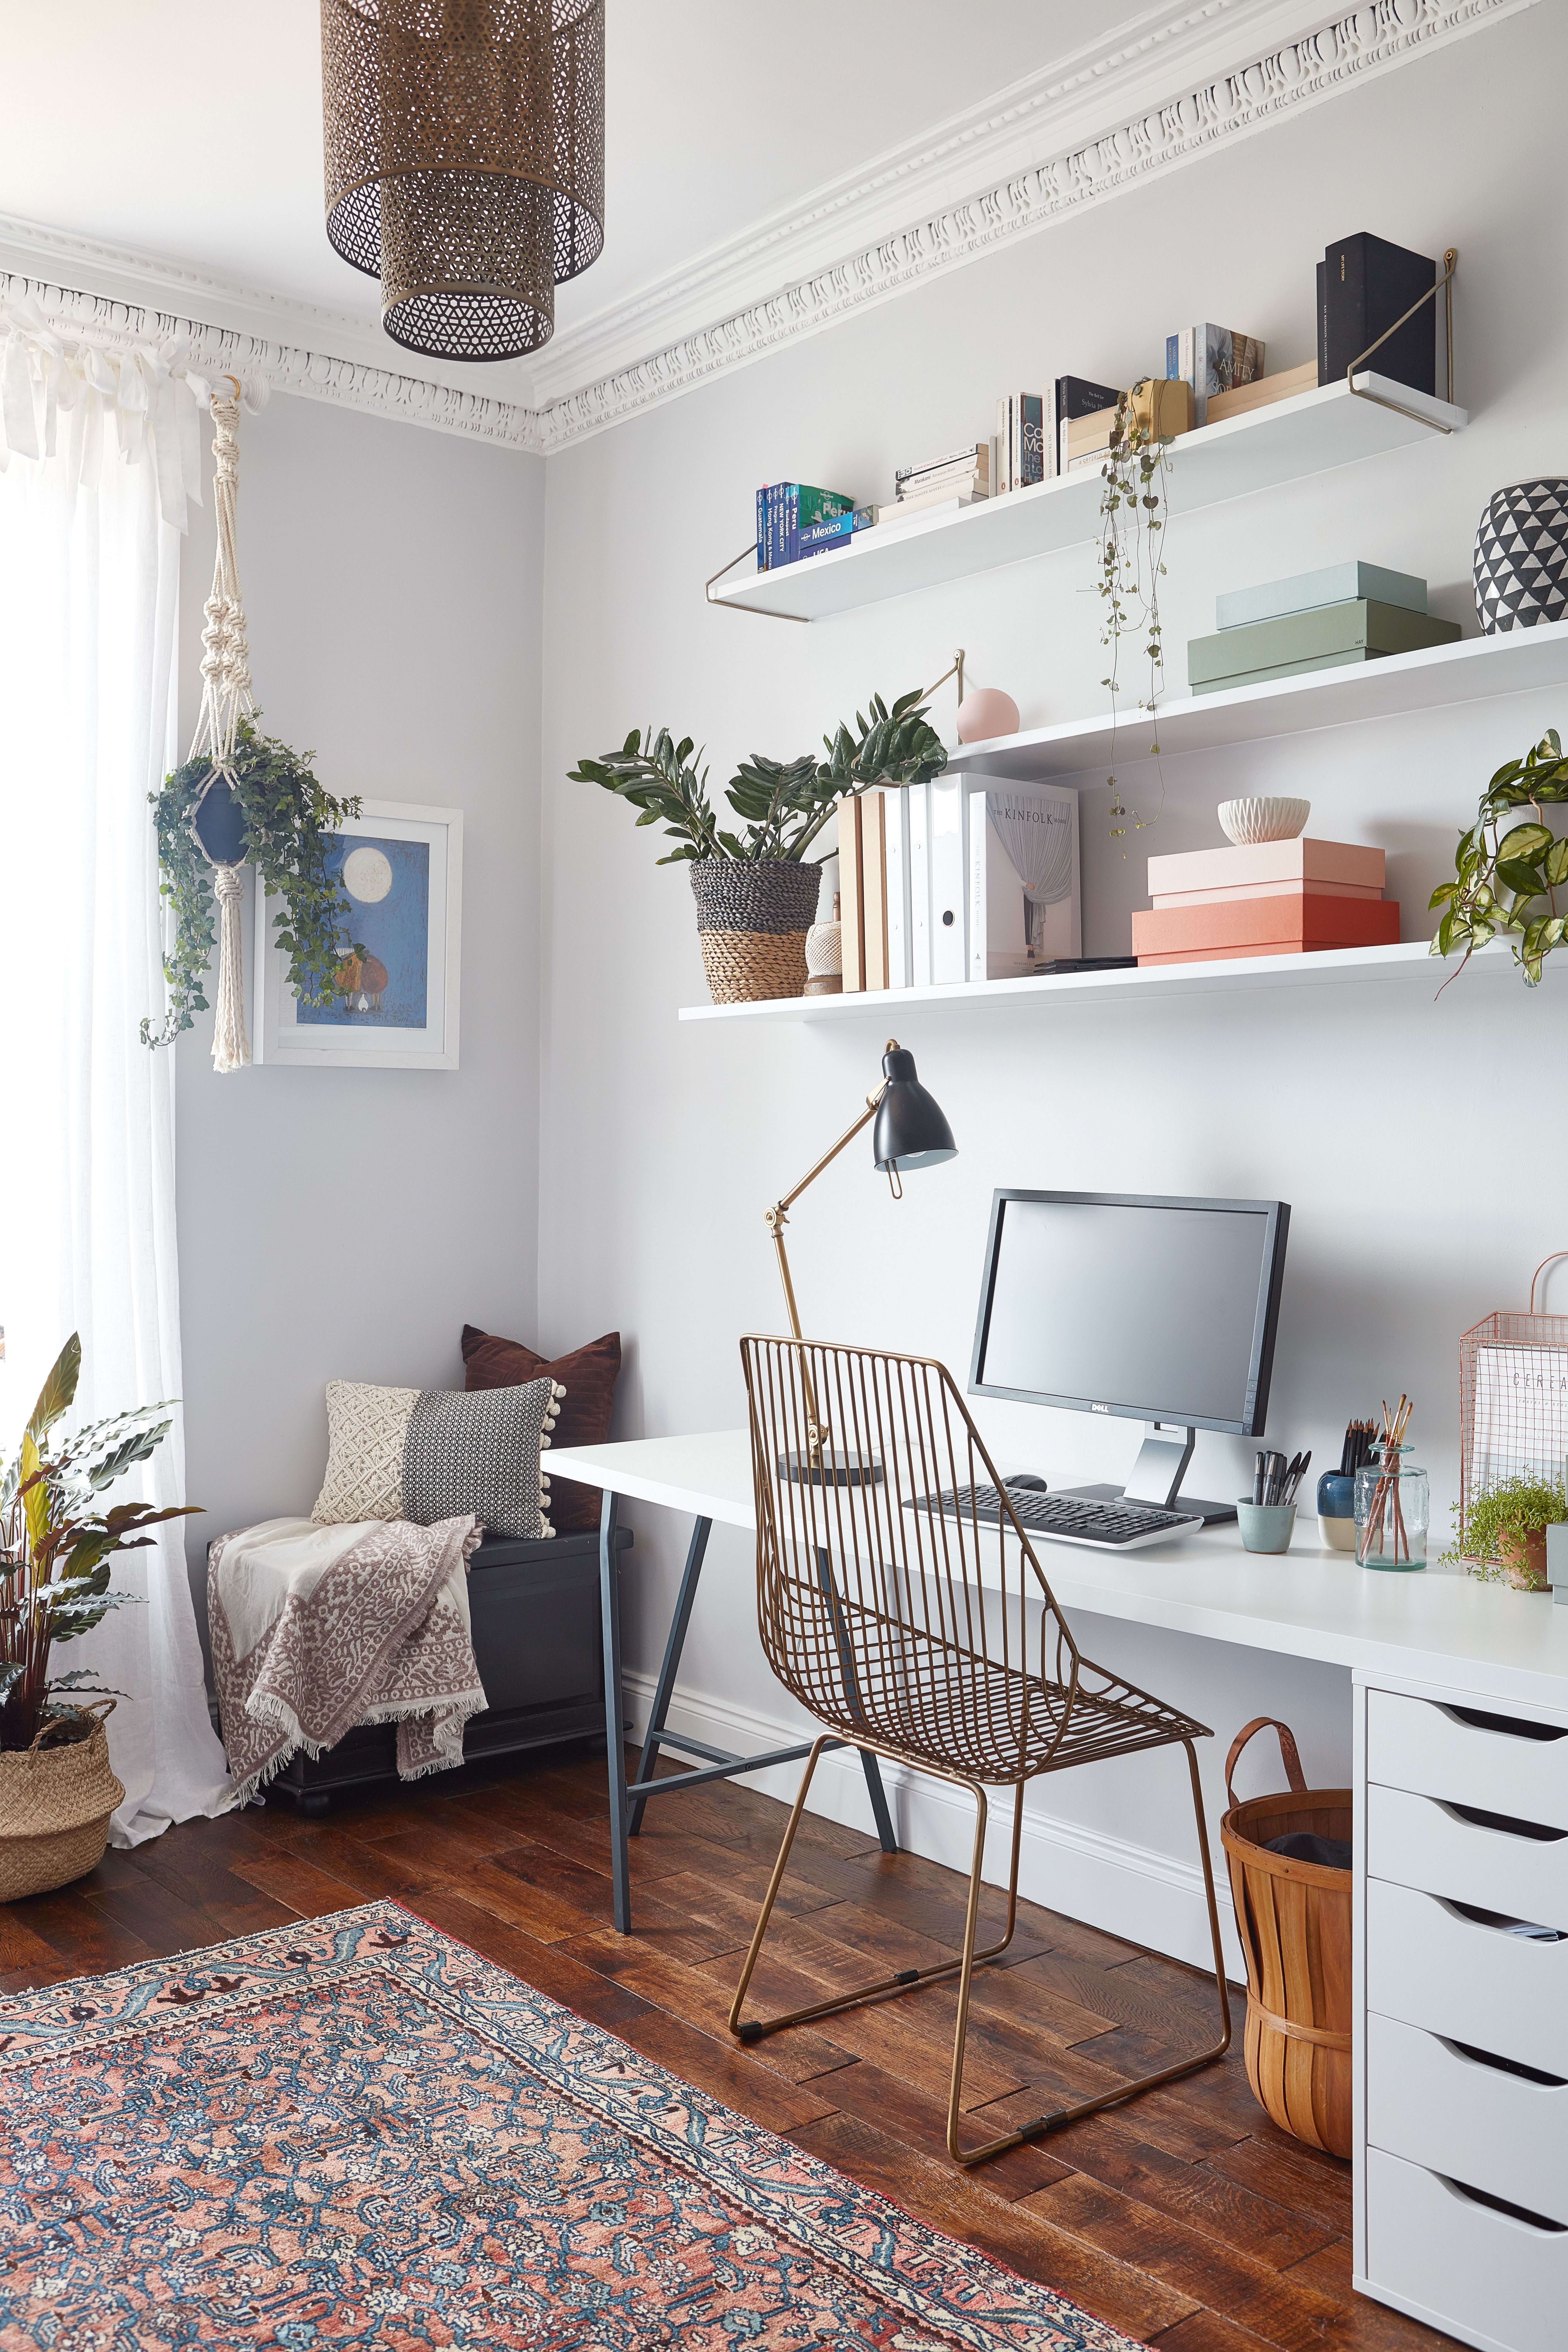 11 home office storage ideas | Ikea home office, Office interiors ...